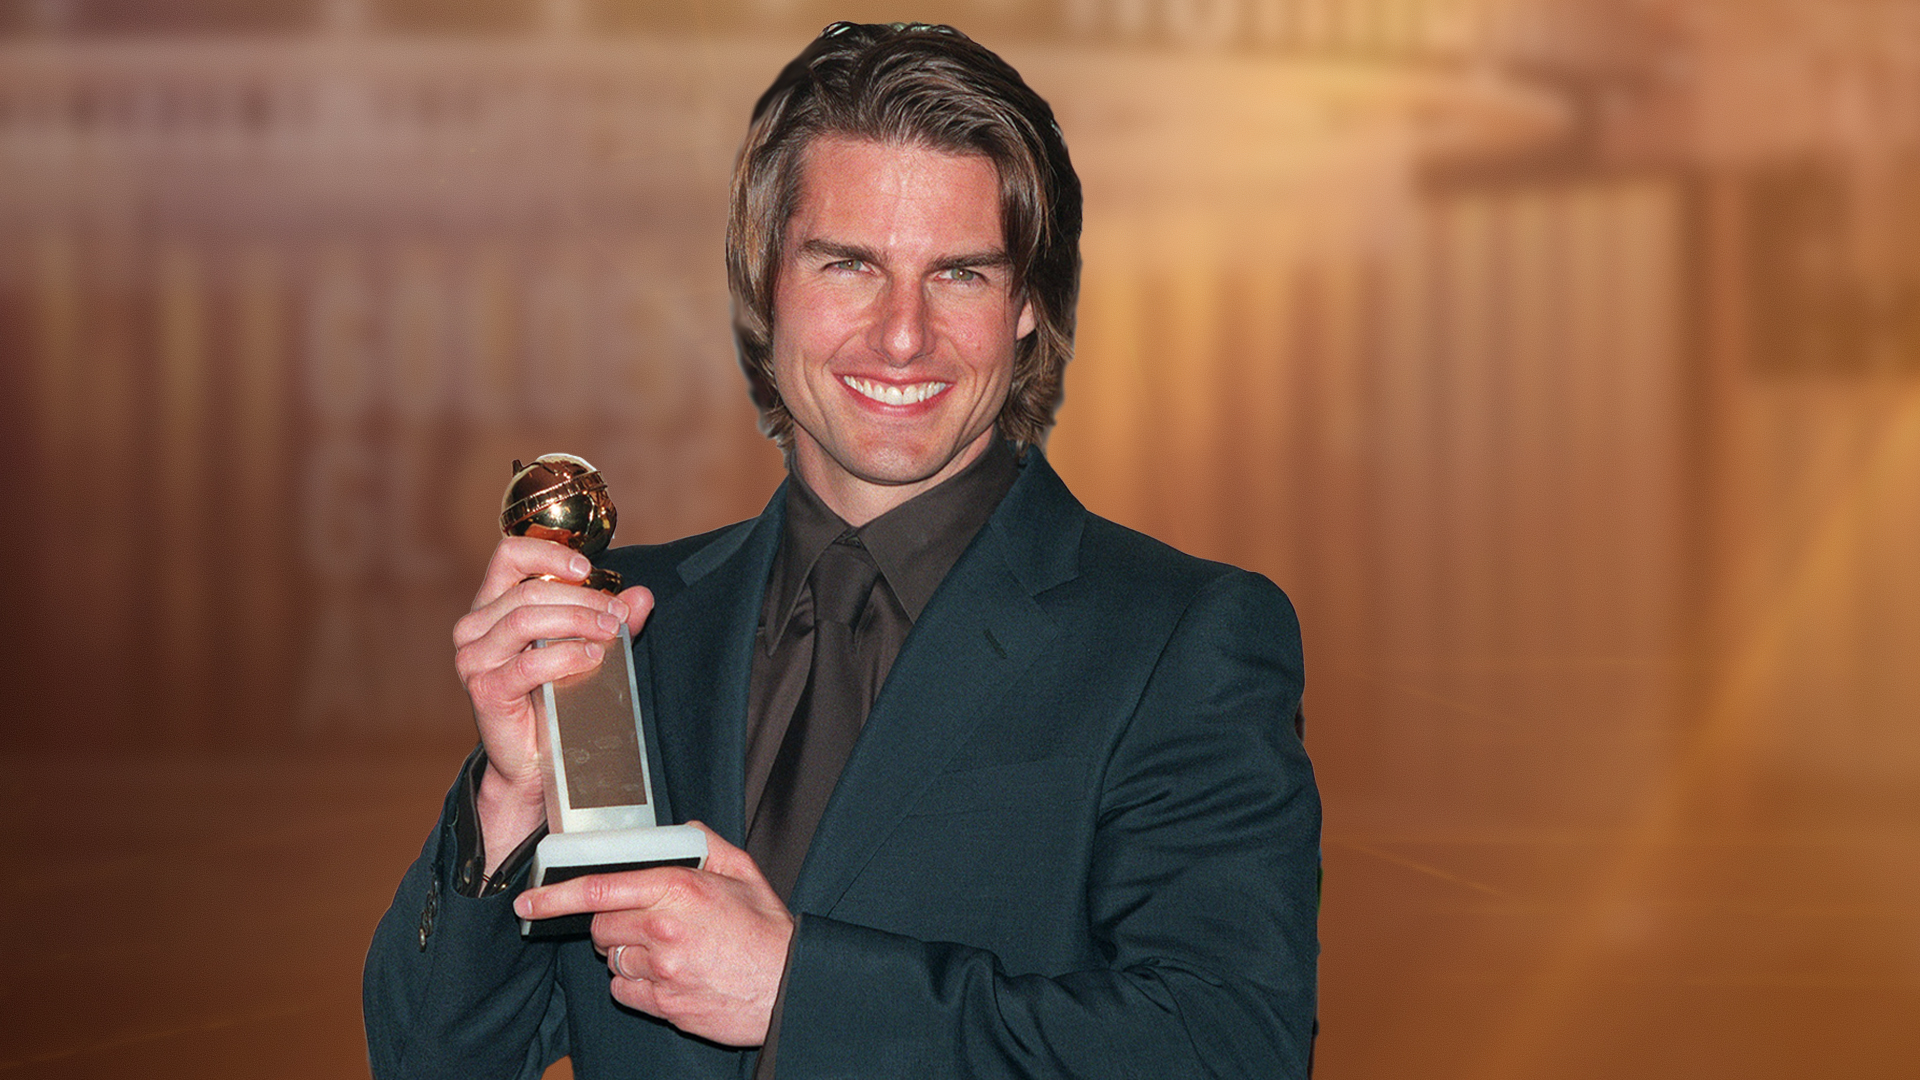 Tom Cruise gives Golden Globes the ultimate diss